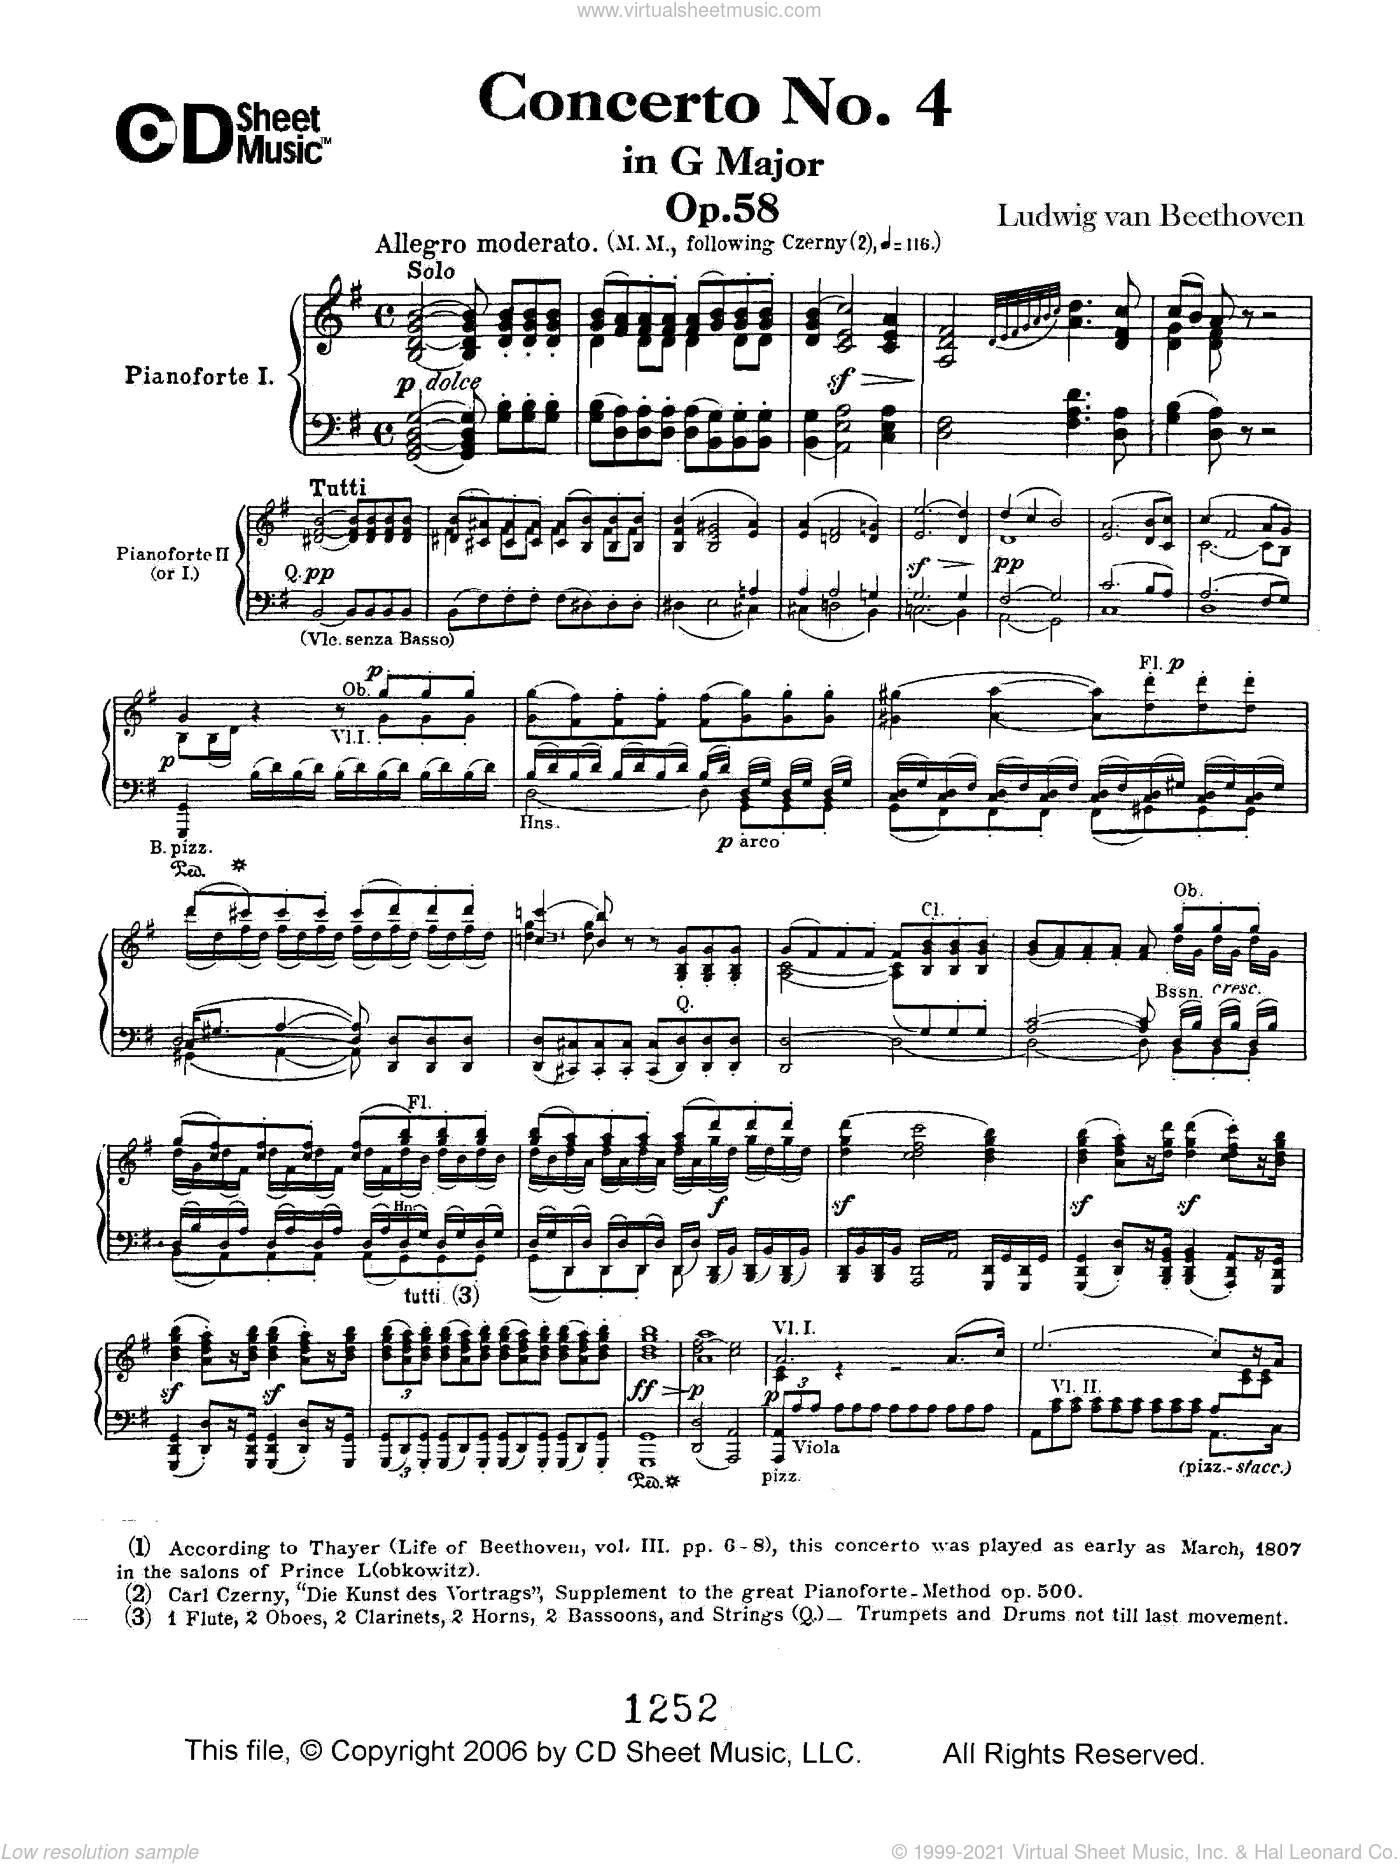 Concerto No. 4 In G Major, Op. 58 sheet music for piano solo by Ludwig van Beethoven